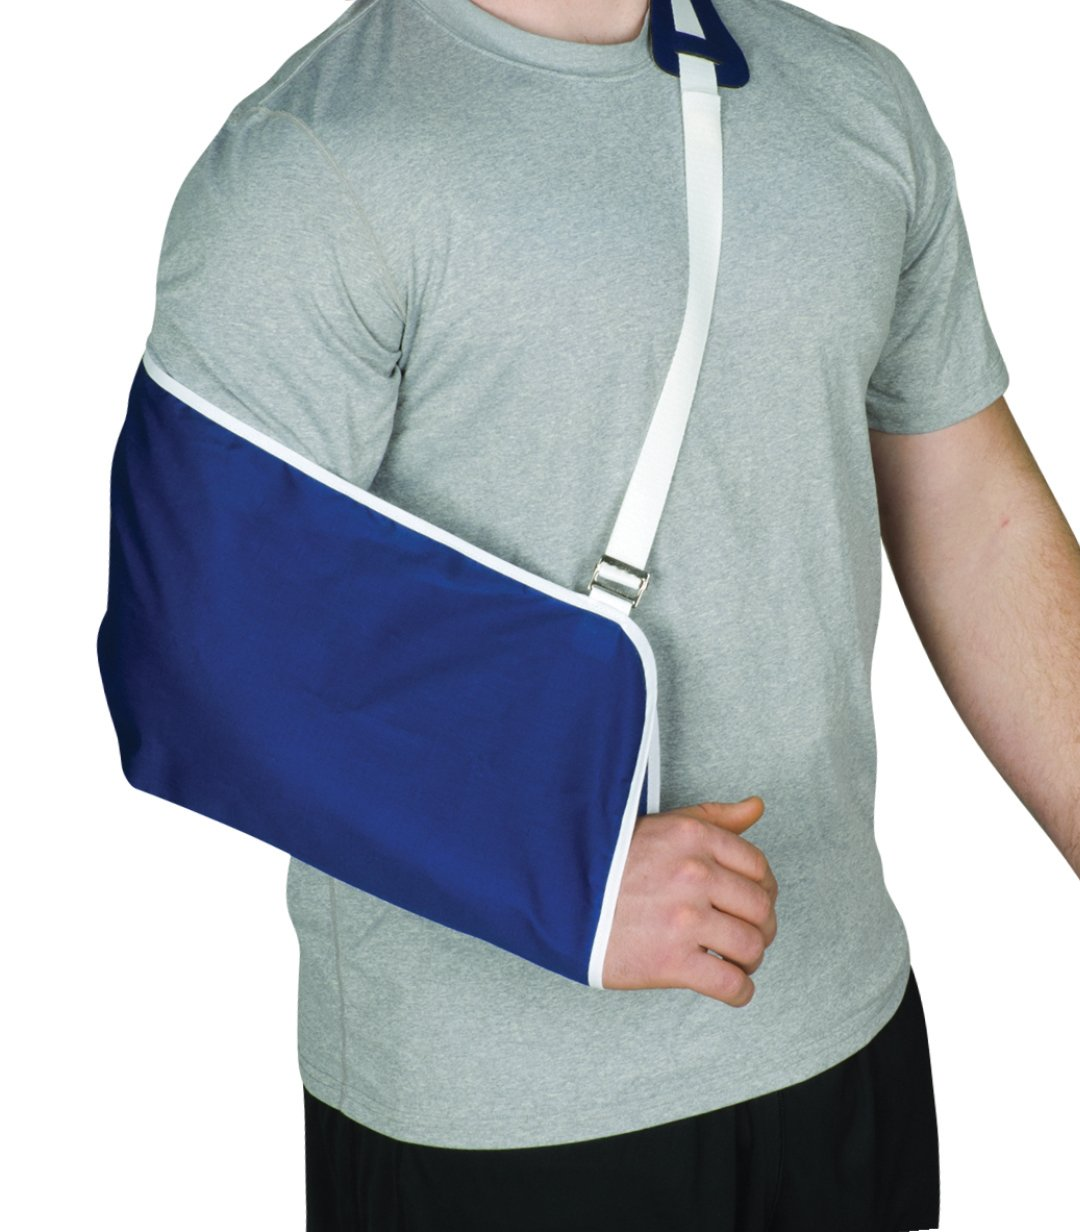 Blue Jay Universal Arm Sling – Blue/White, 18'' x 9'' Pouch Arm Sling for Shoulder Comfort Pad, Comfort Pad, Neoprene Shoulder Pad, Durable Cotton Arm Sling Immobilizer